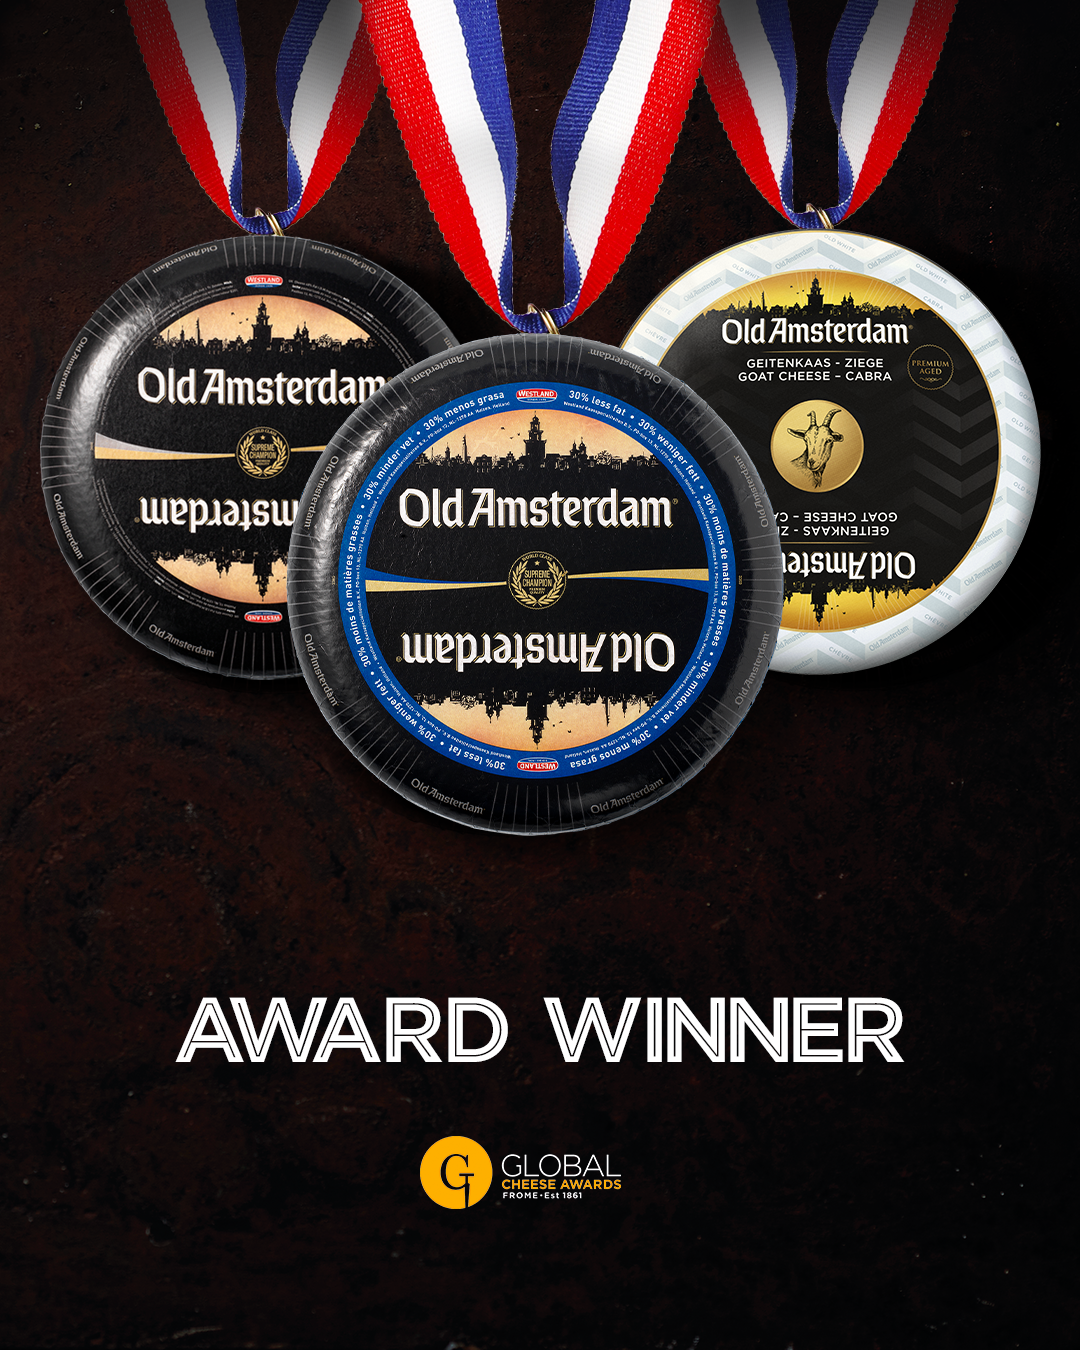 OA Global Cheese Award eng.png